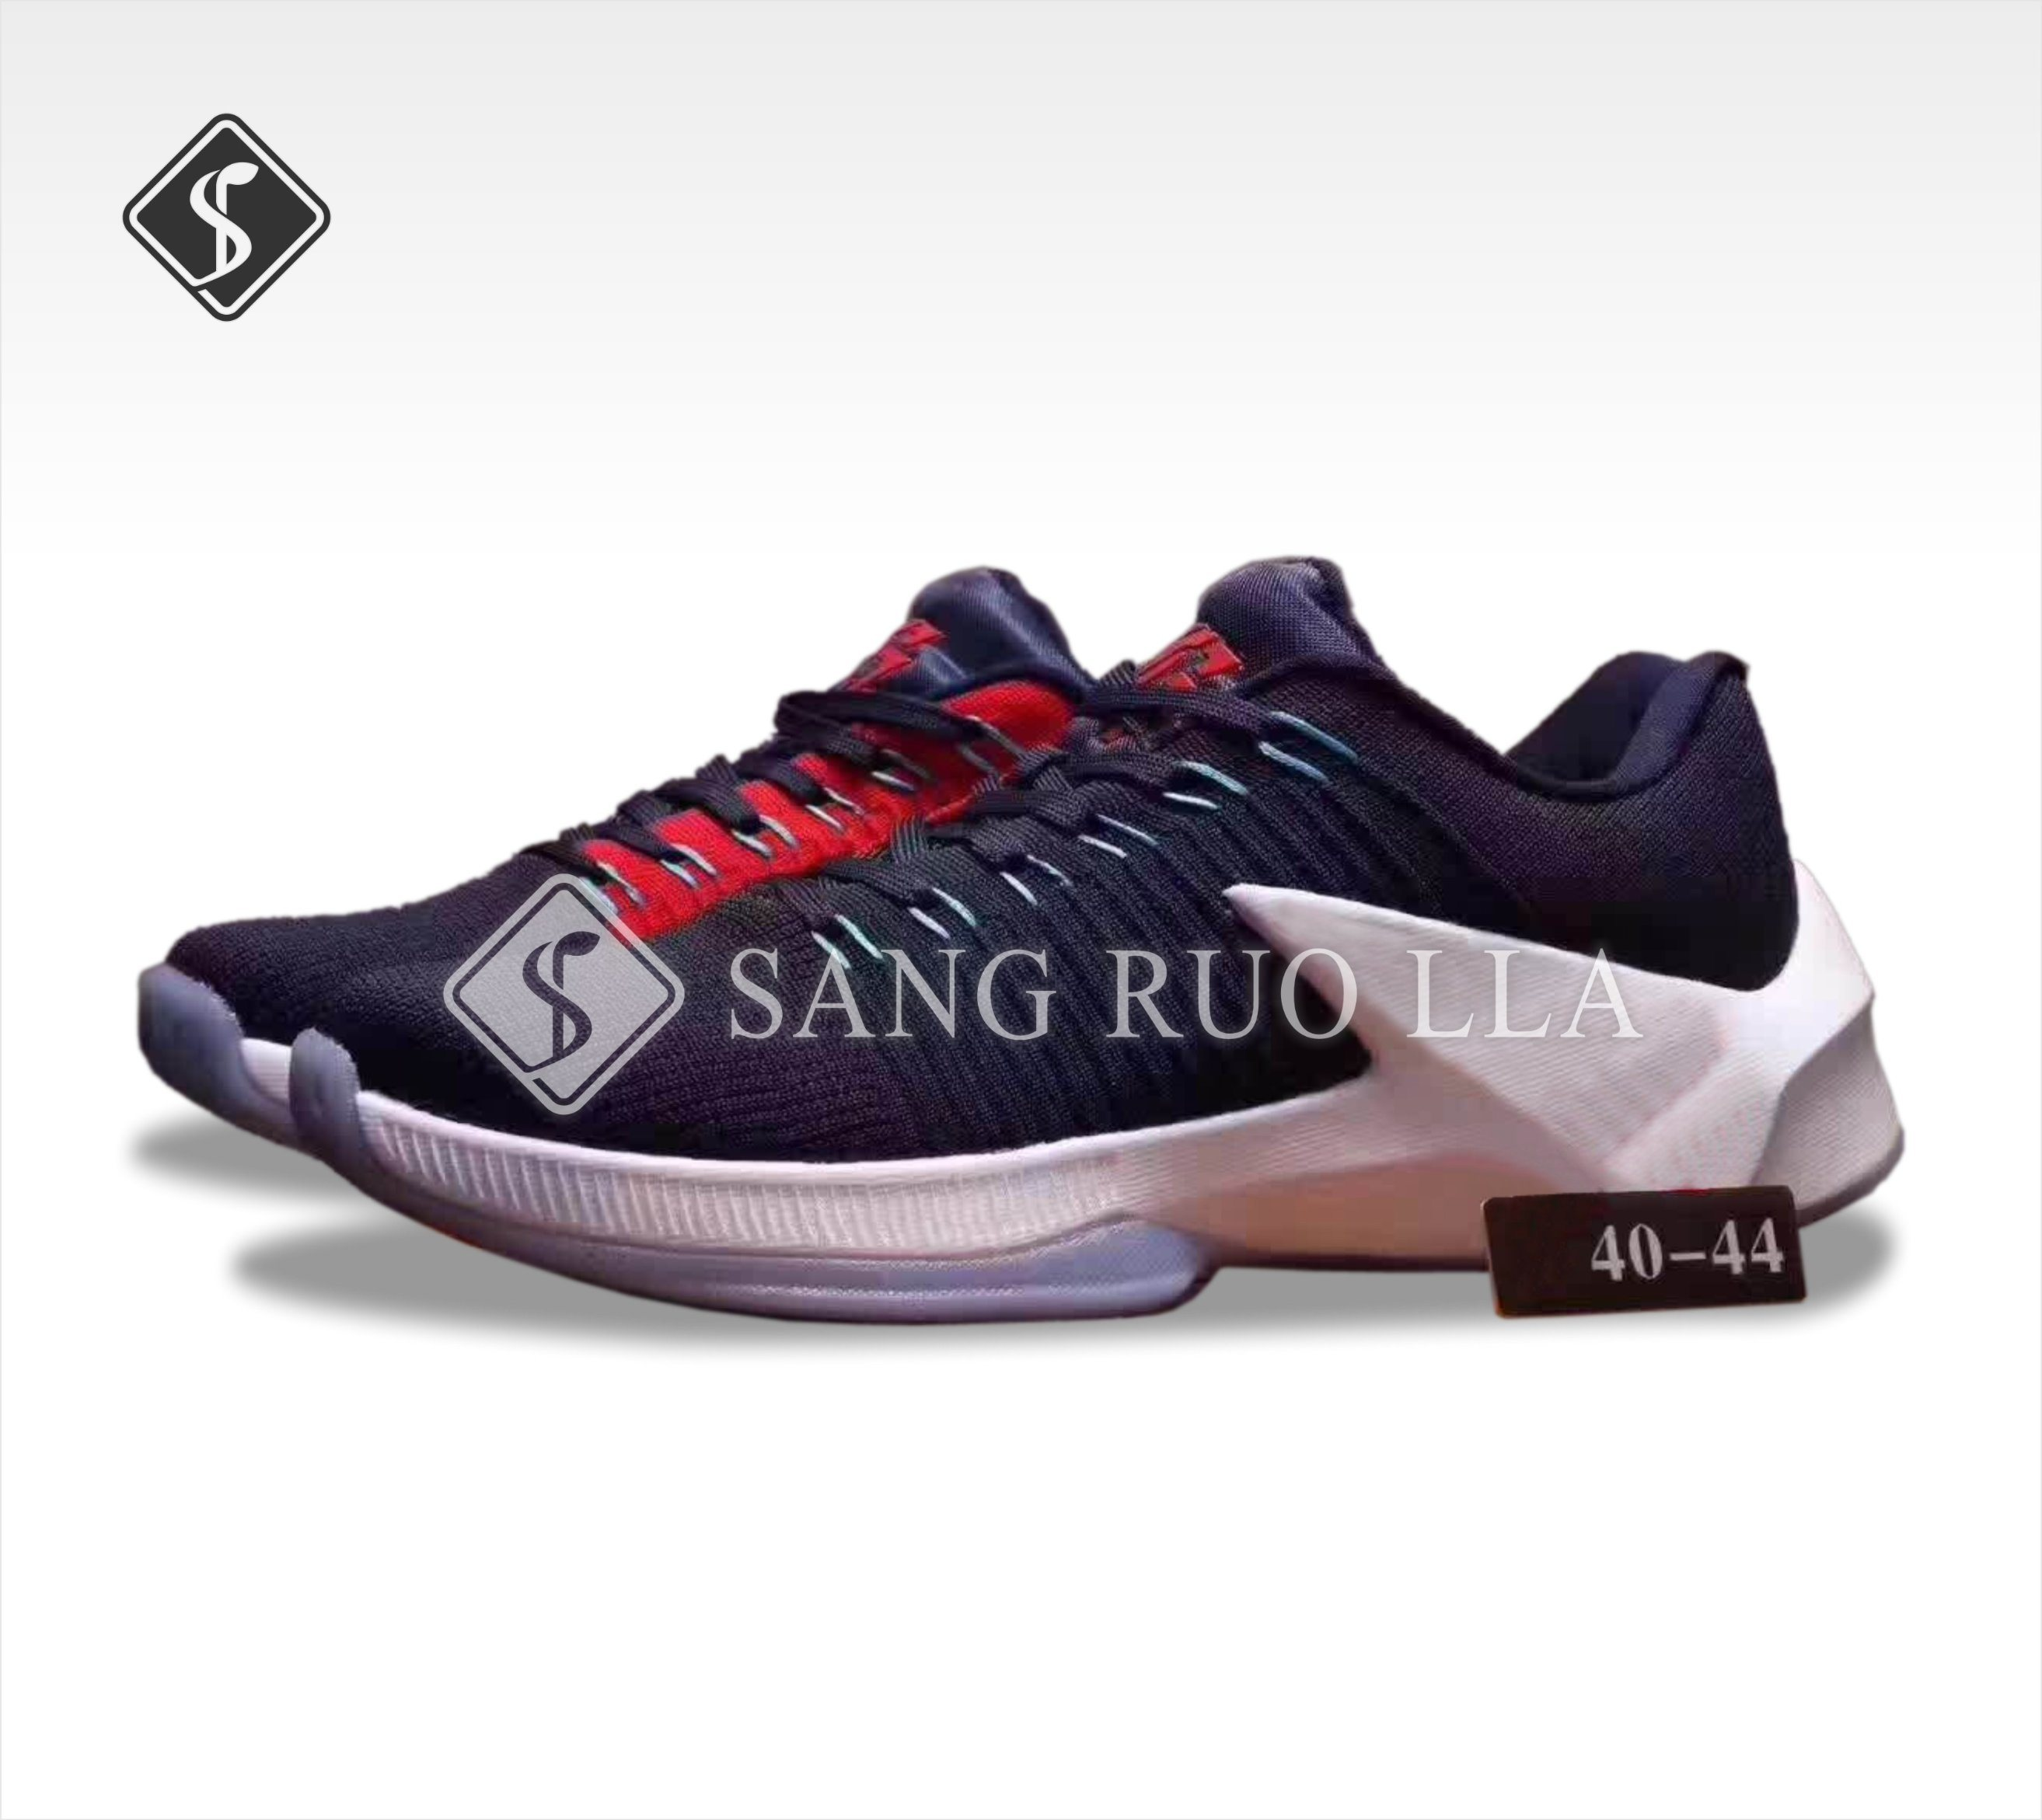 Fly Knitting Shoes, Sports Shoes, Running Shoes, Sneaker, Men′s Shoes, Women′s Shoes